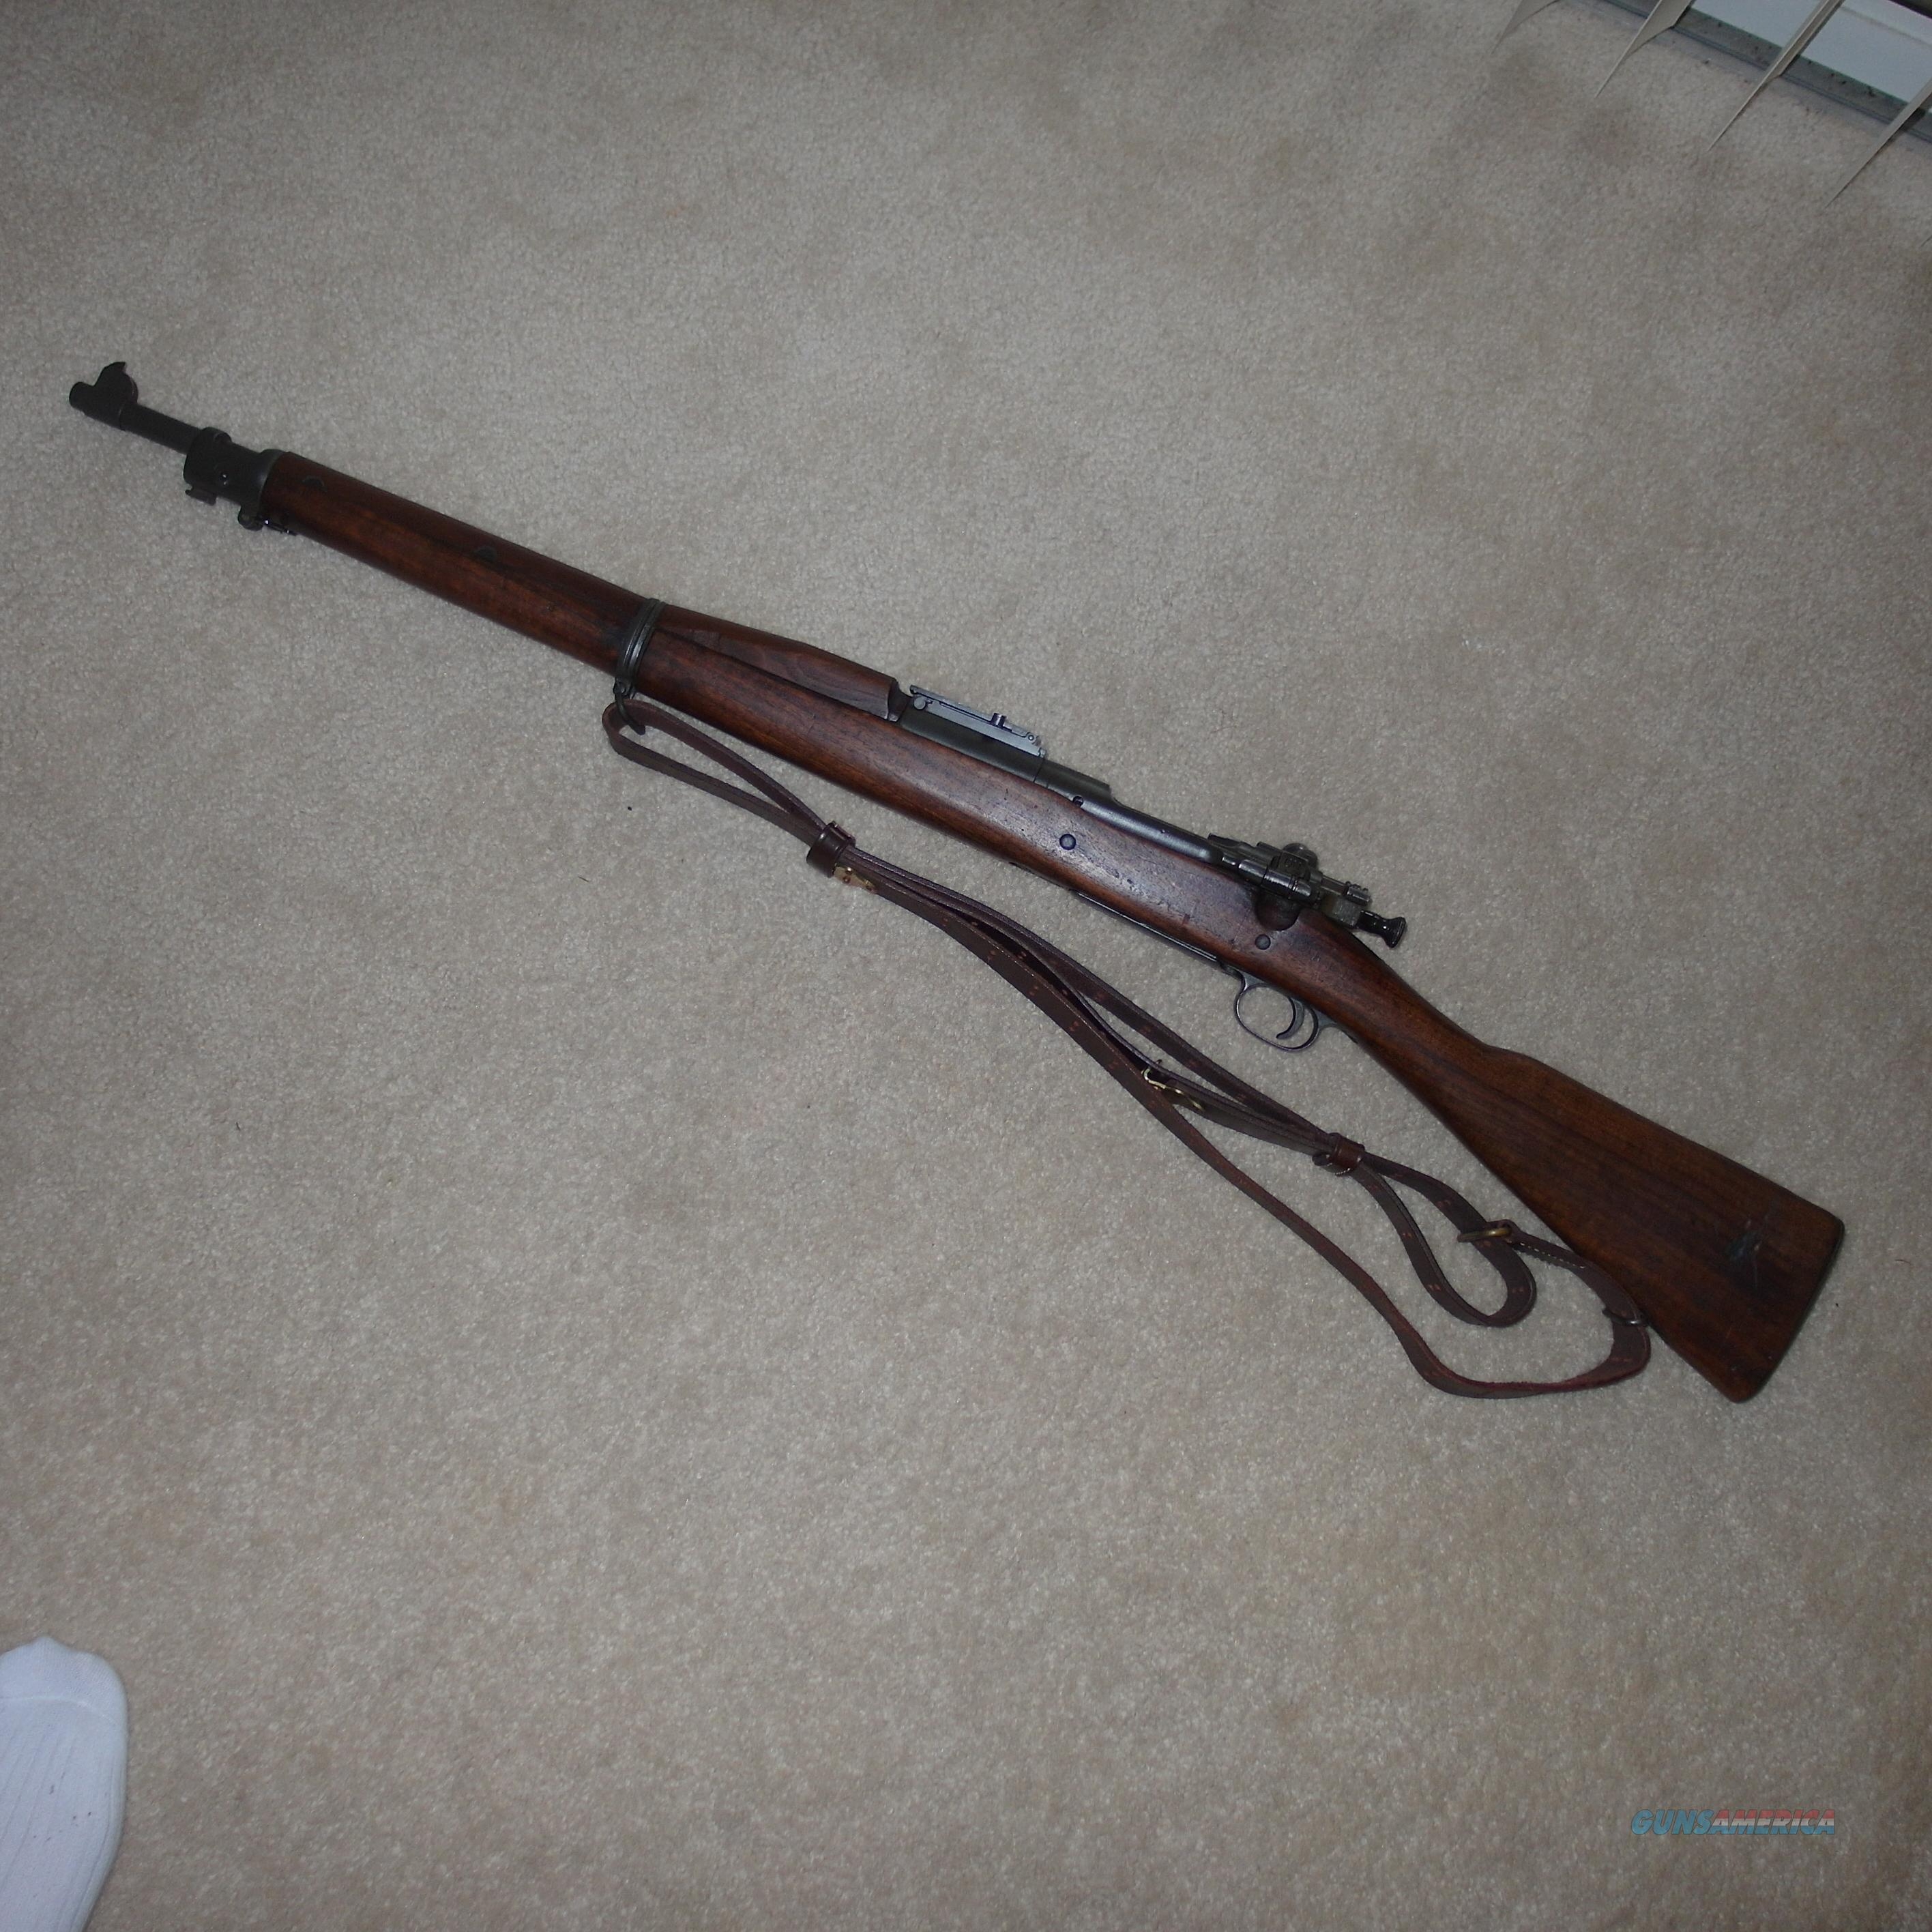 dating guns by serial number Marlin guide gun 45-70 govt the marlin lever guns have an mr as a serial number prefix dating a marlin guide gun, last serial number for a jm marlin rifle,.